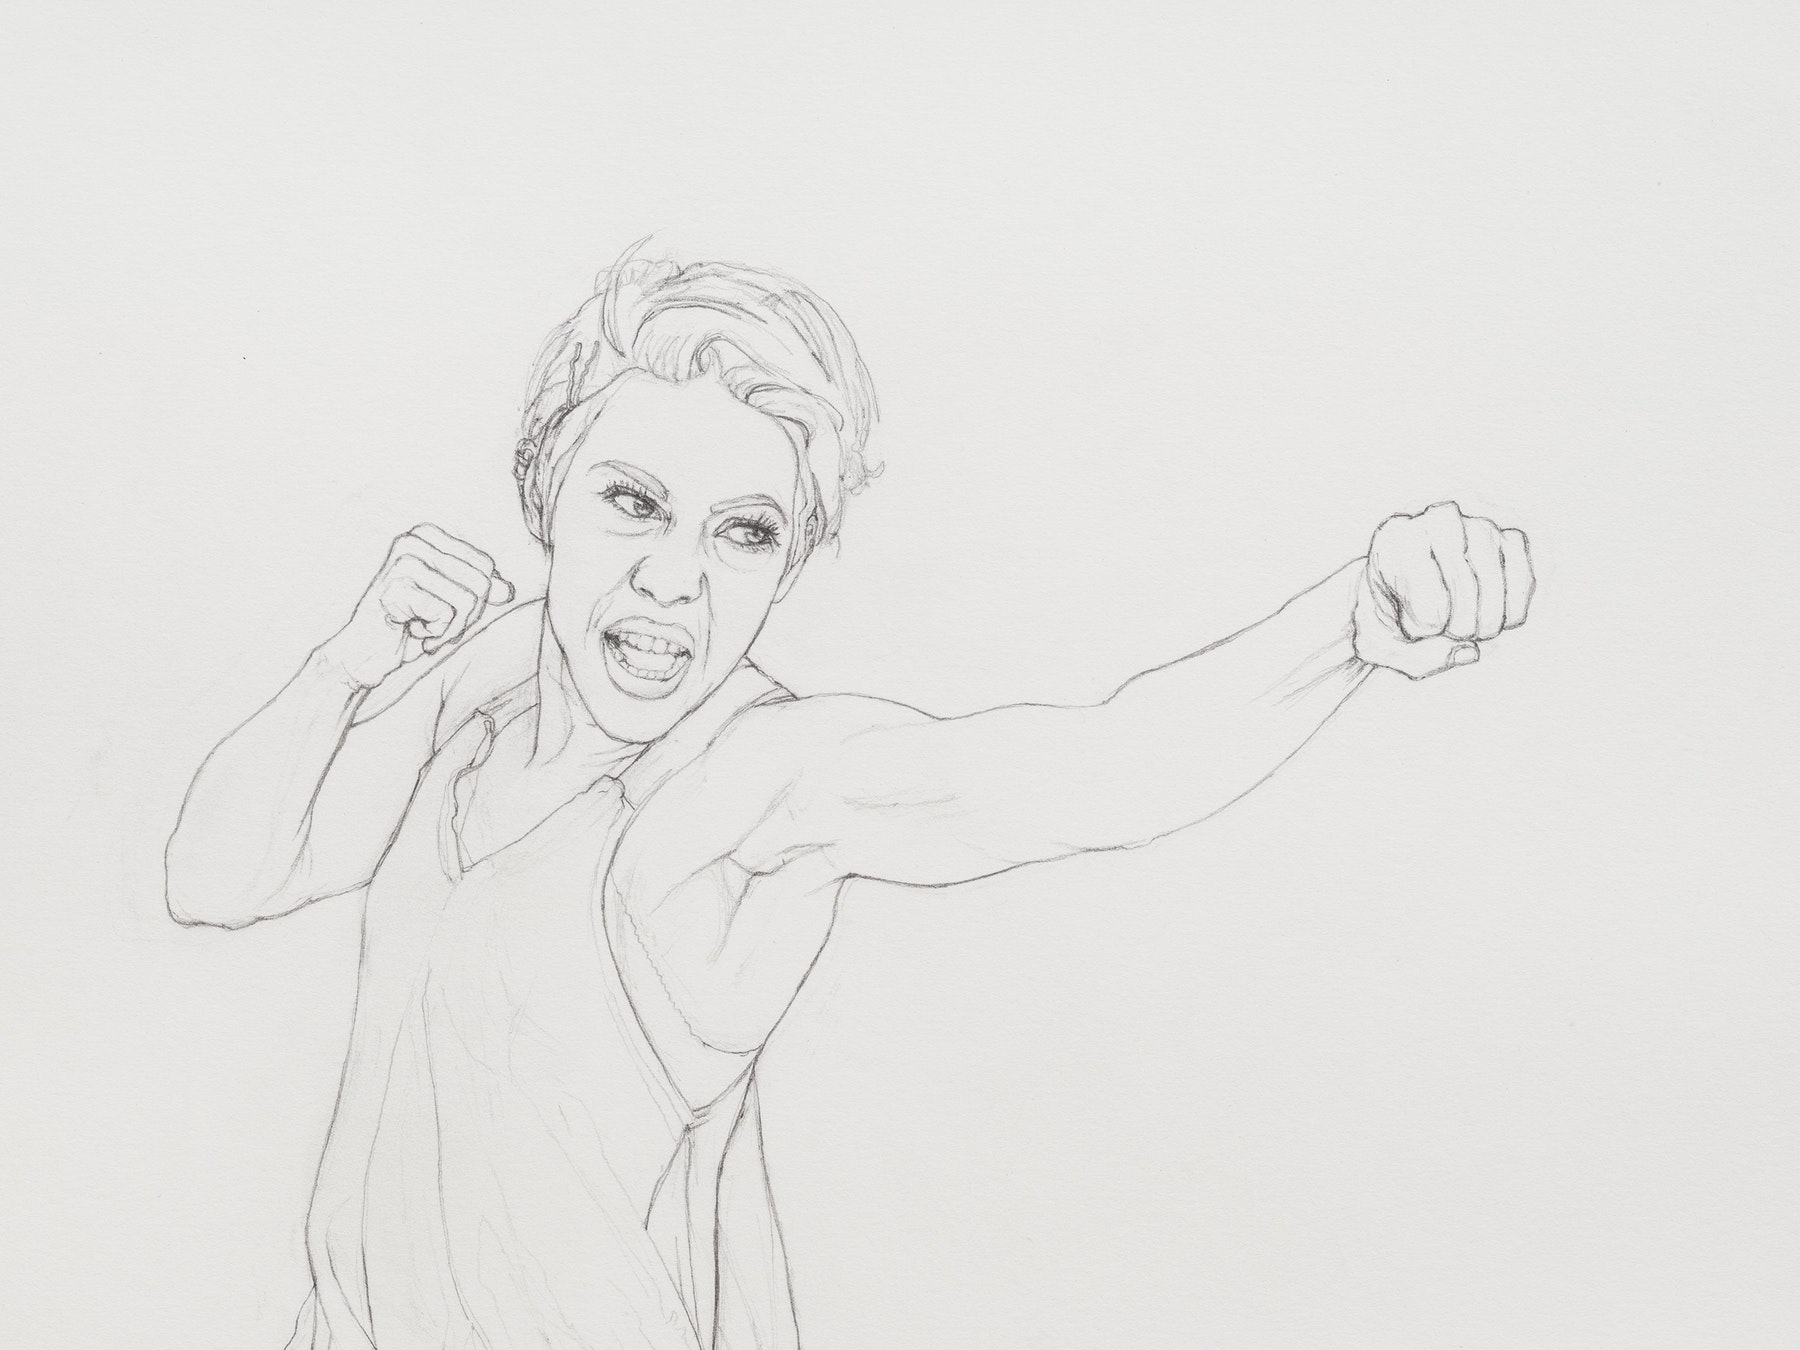 """Andrea Bowers """"Self-Defense Drawings - Study of Sunny,"""" 2021 Graphite on paper 22 ³⁄₈"""" x 15"""" [HxW] (56.81 x 38.1 cm) paper size; 25 ¹⁄₄"""" x 17 ³⁄₄"""" x 2"""" [HxWxD] (64.13 x 45.08 x 5.08 cm) framed Inventory #BOW594 Courtesy of the artist and Vielmetter Los Angeles Photo credit: Jeff McLane"""